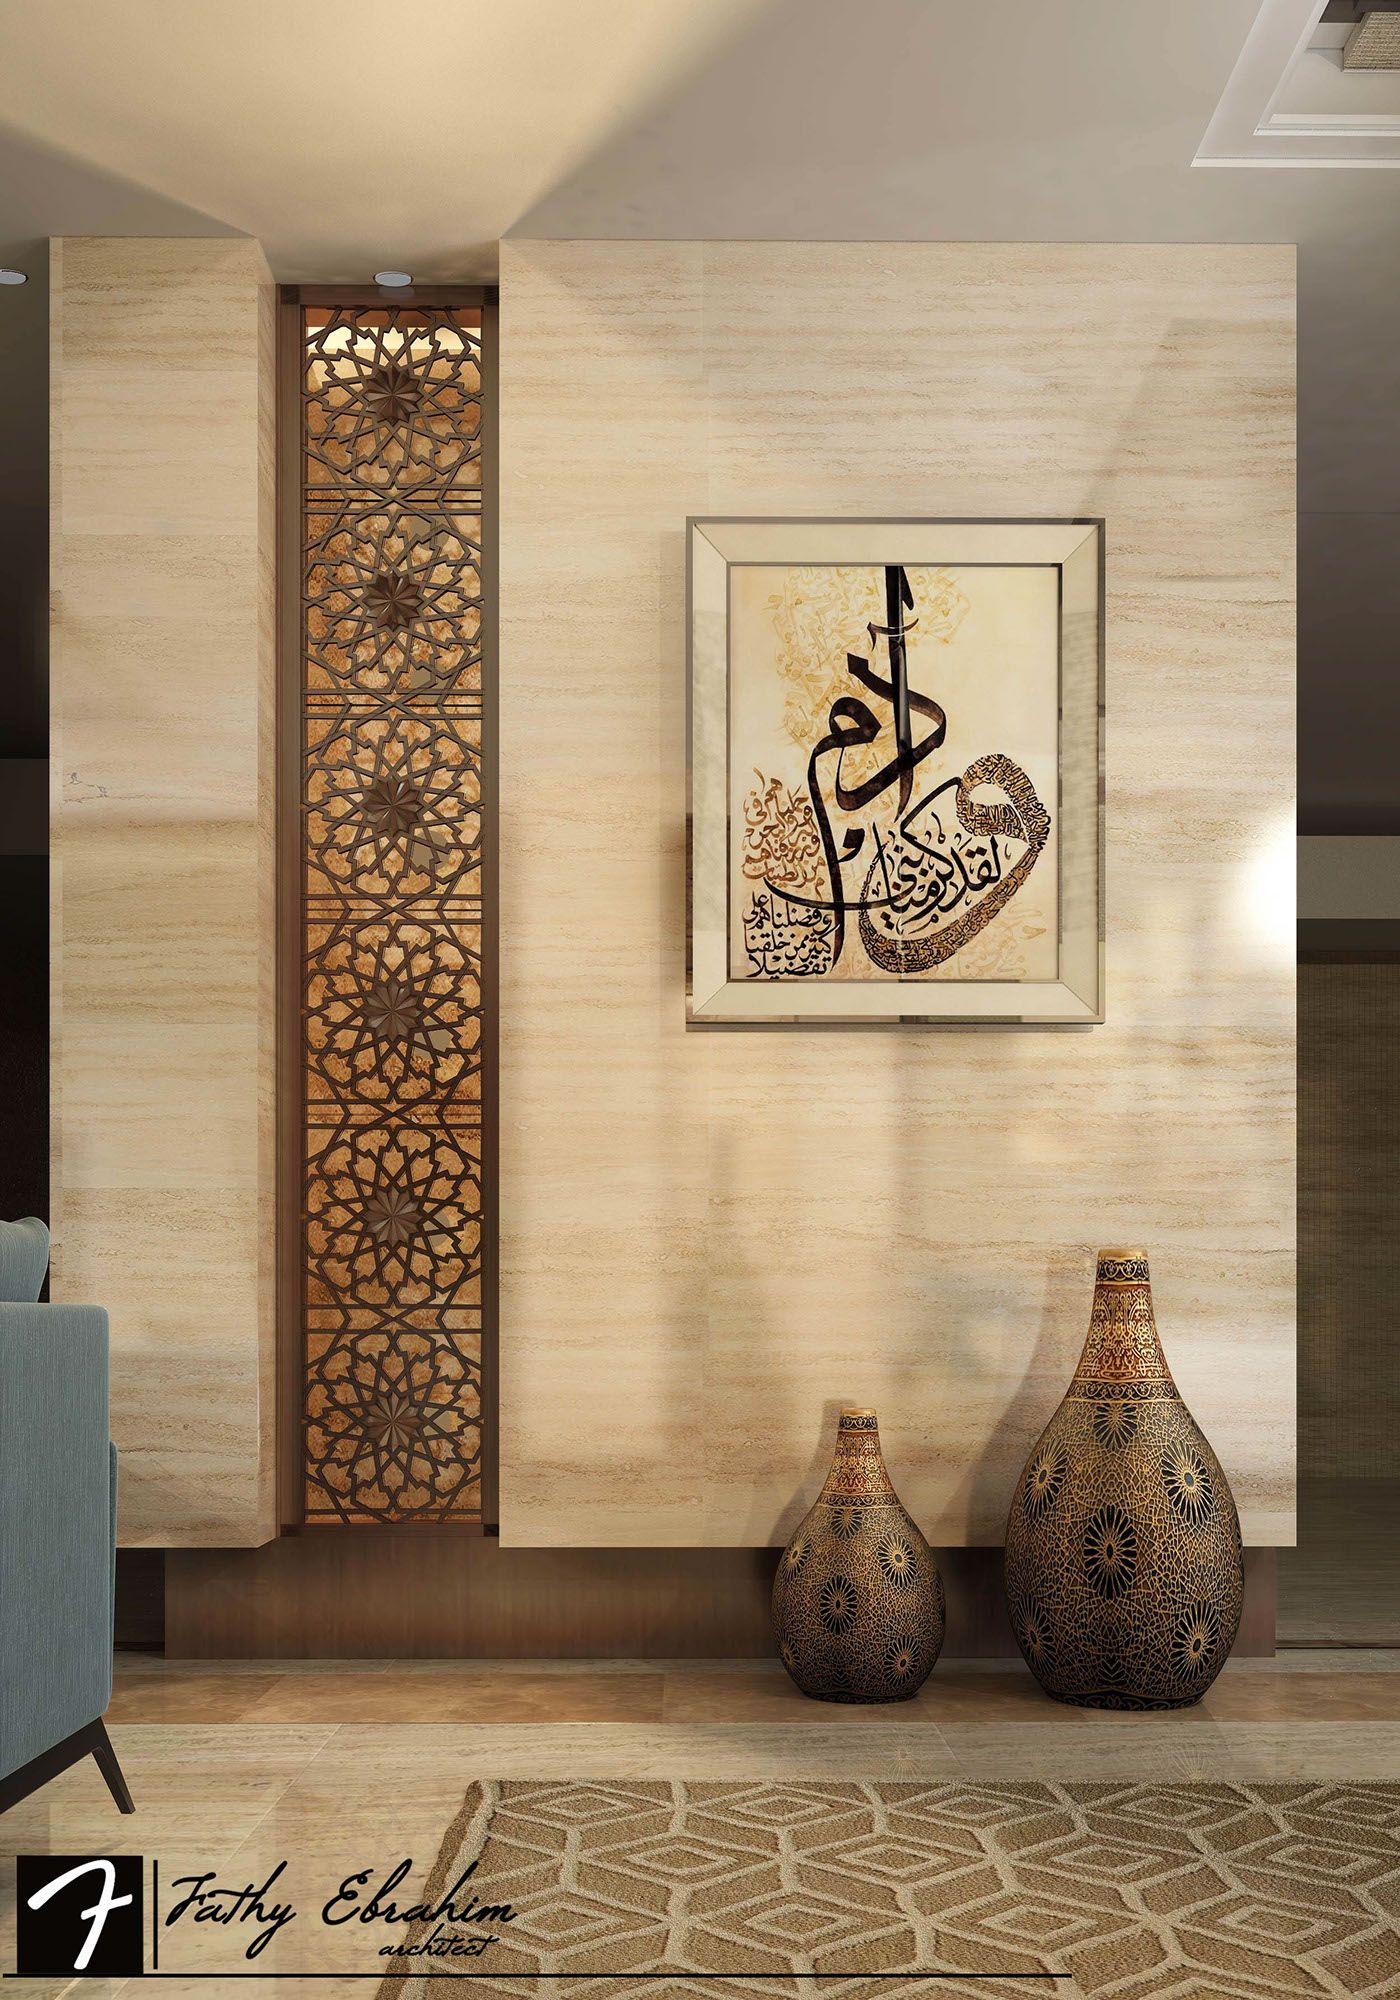 Modern Interior Design Is Based On Iranian Architecture: Modern Islamic Interior Design On Behance